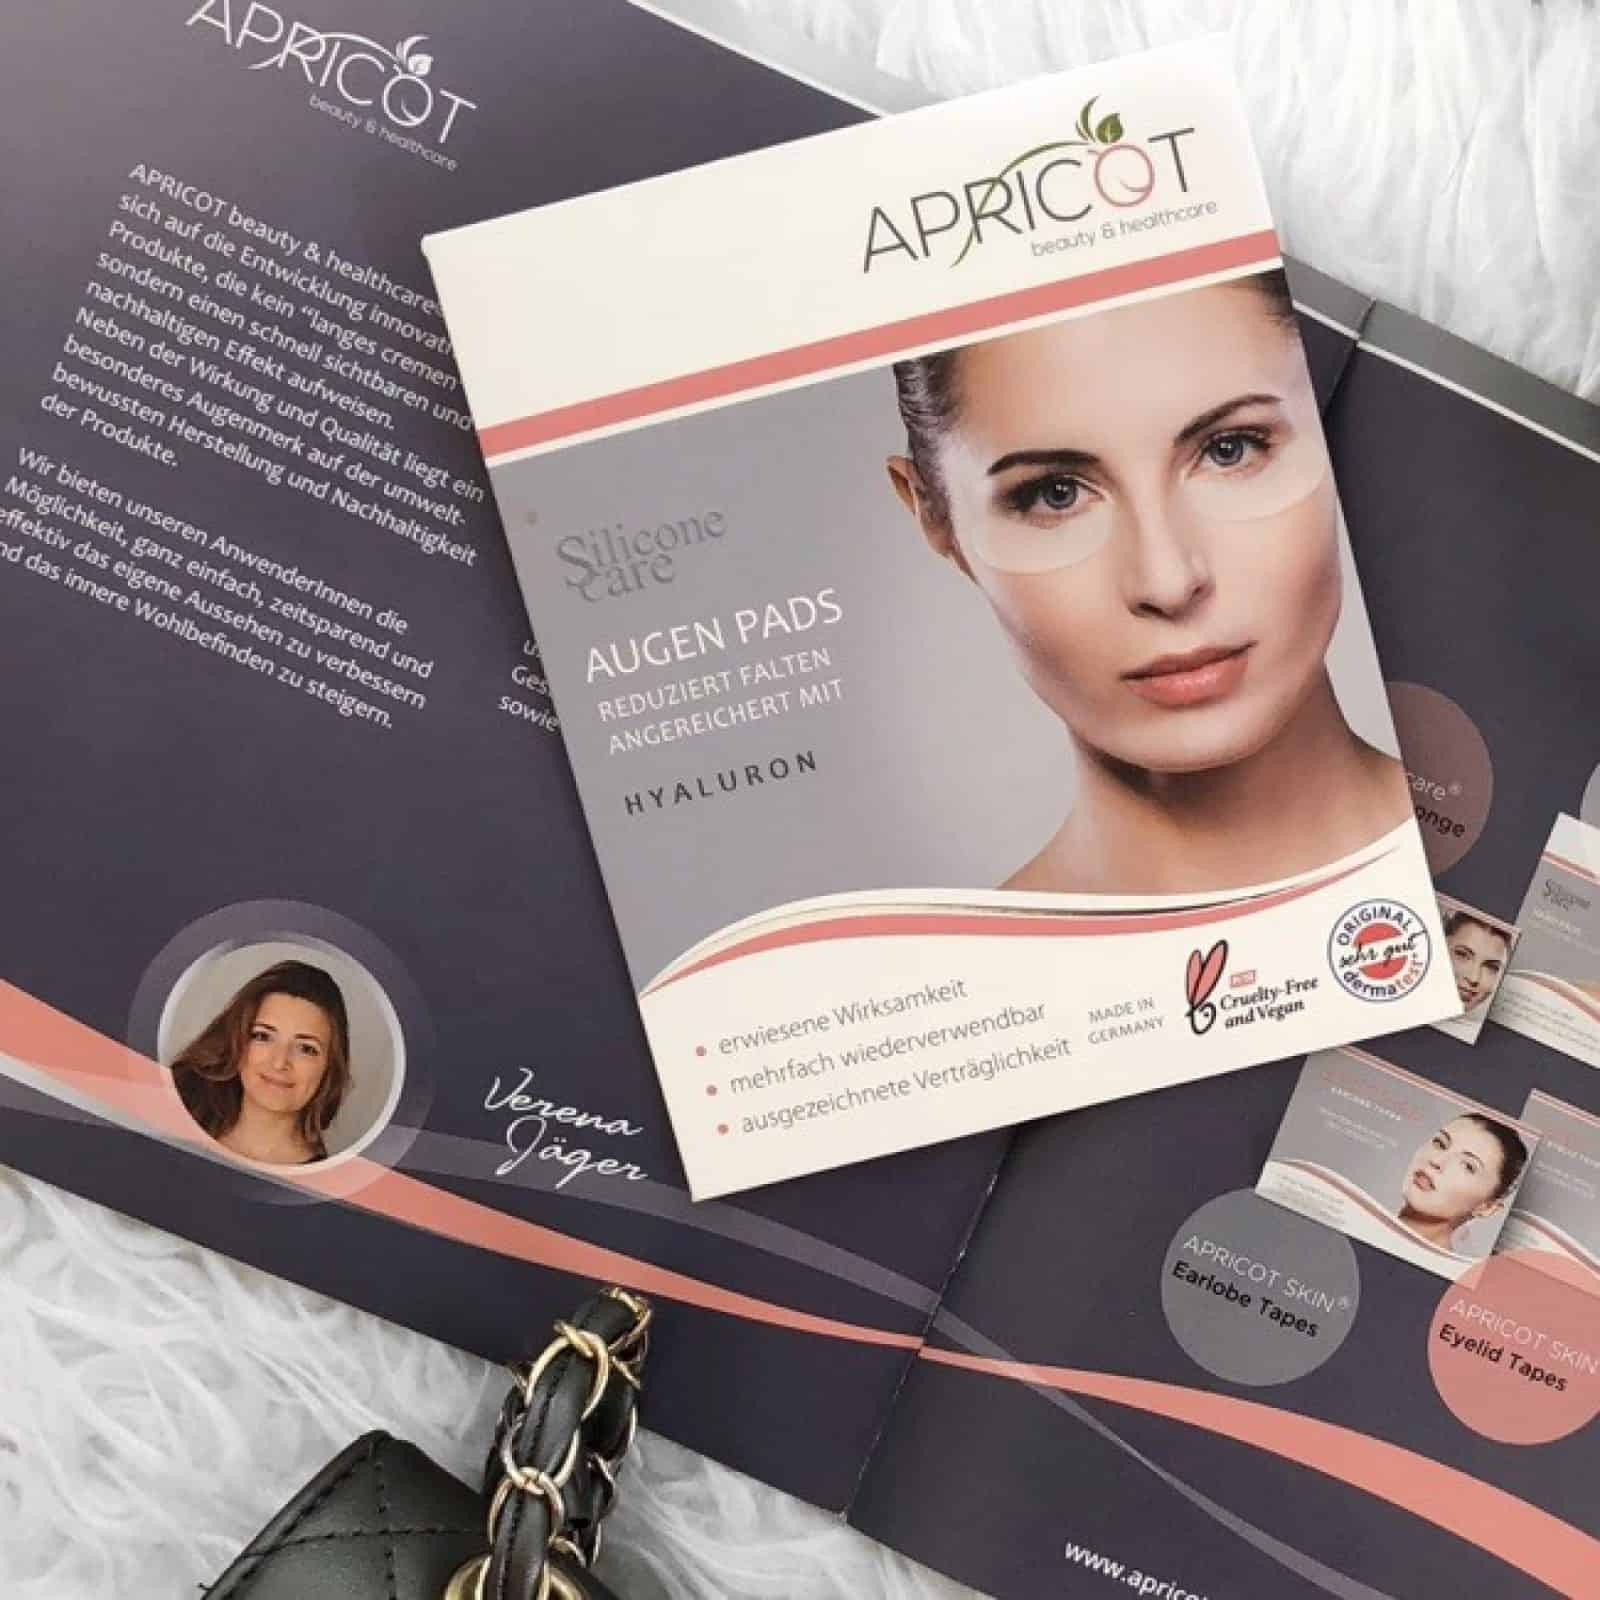 Silicone care® Eye Pads